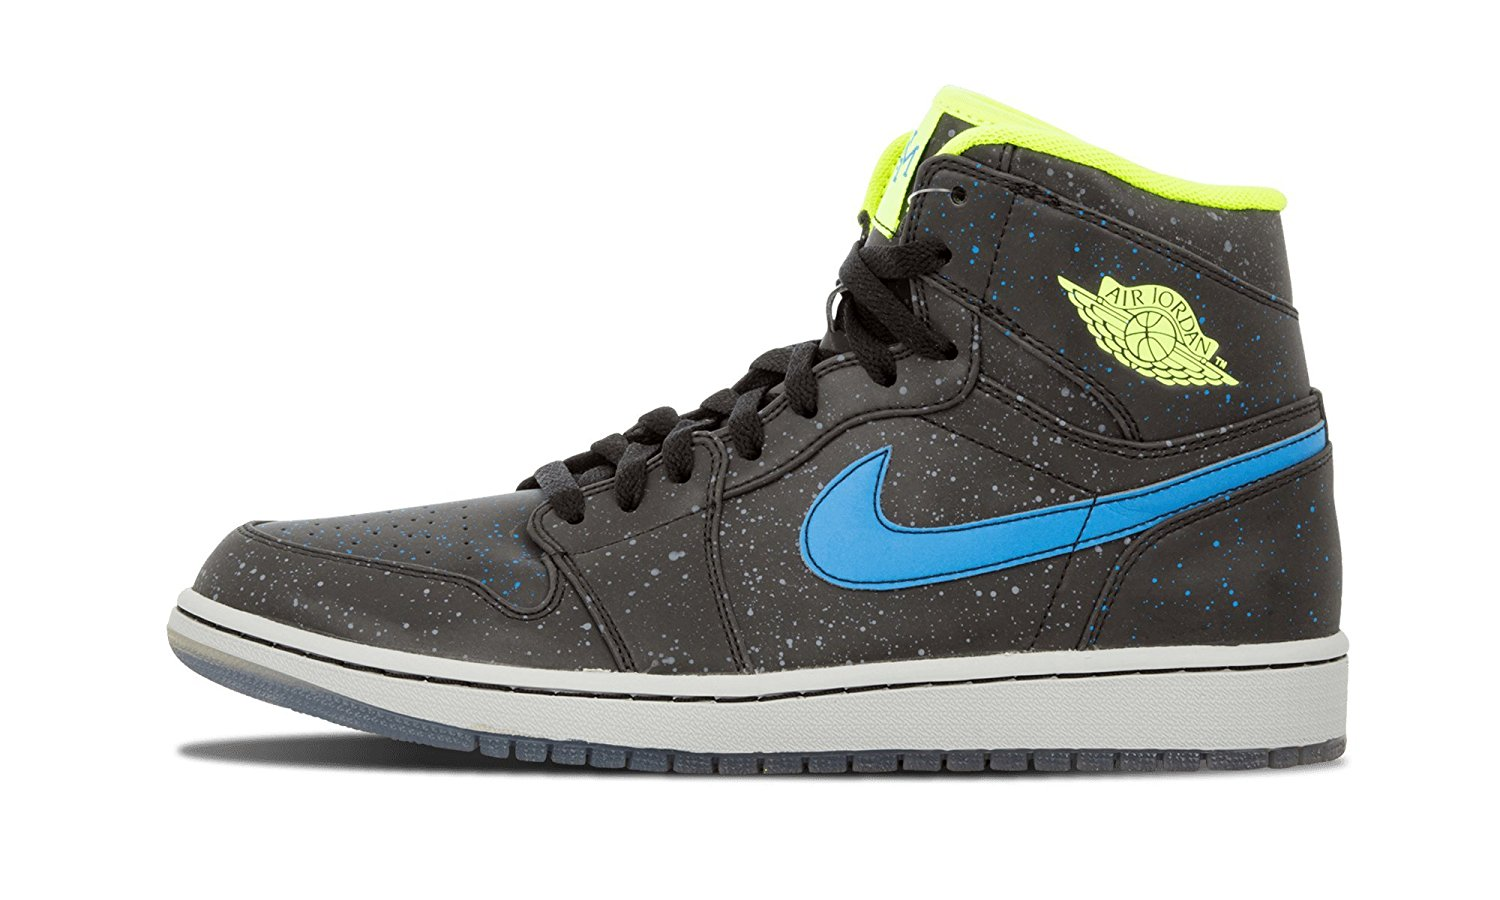 new products dbff6 2db0b Get Quotations · Nike Air Jordan 1 Retro High BHM